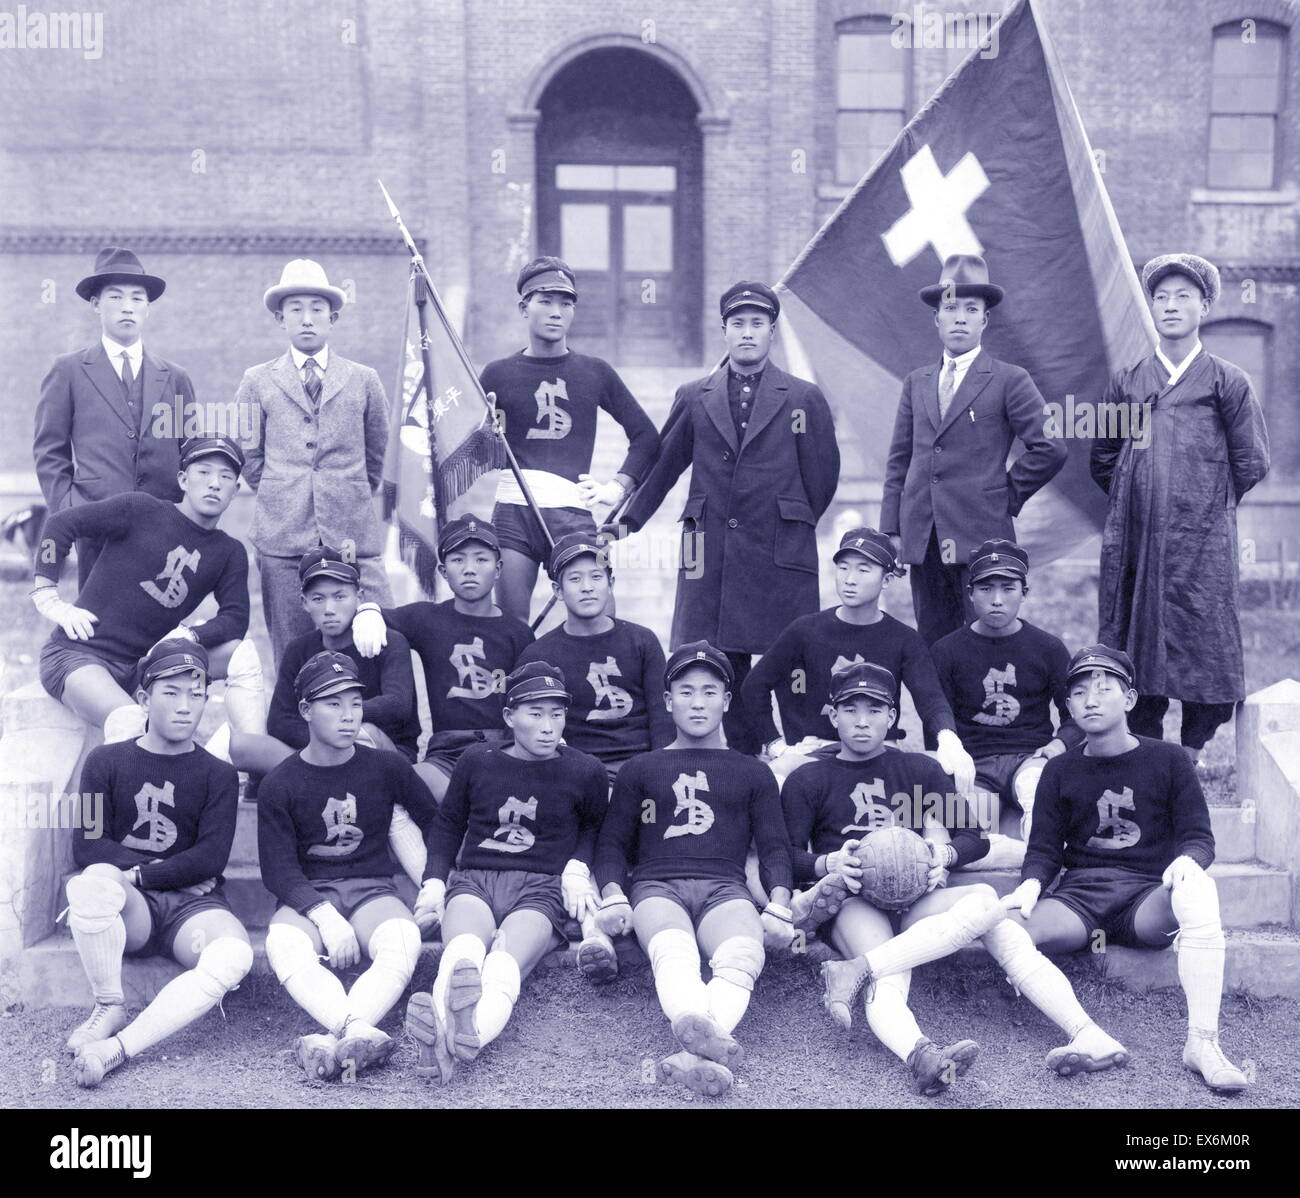 Soongsil Christian Academy's Champion Football Team. Pyongyang, Korea 1925 - Stock Image